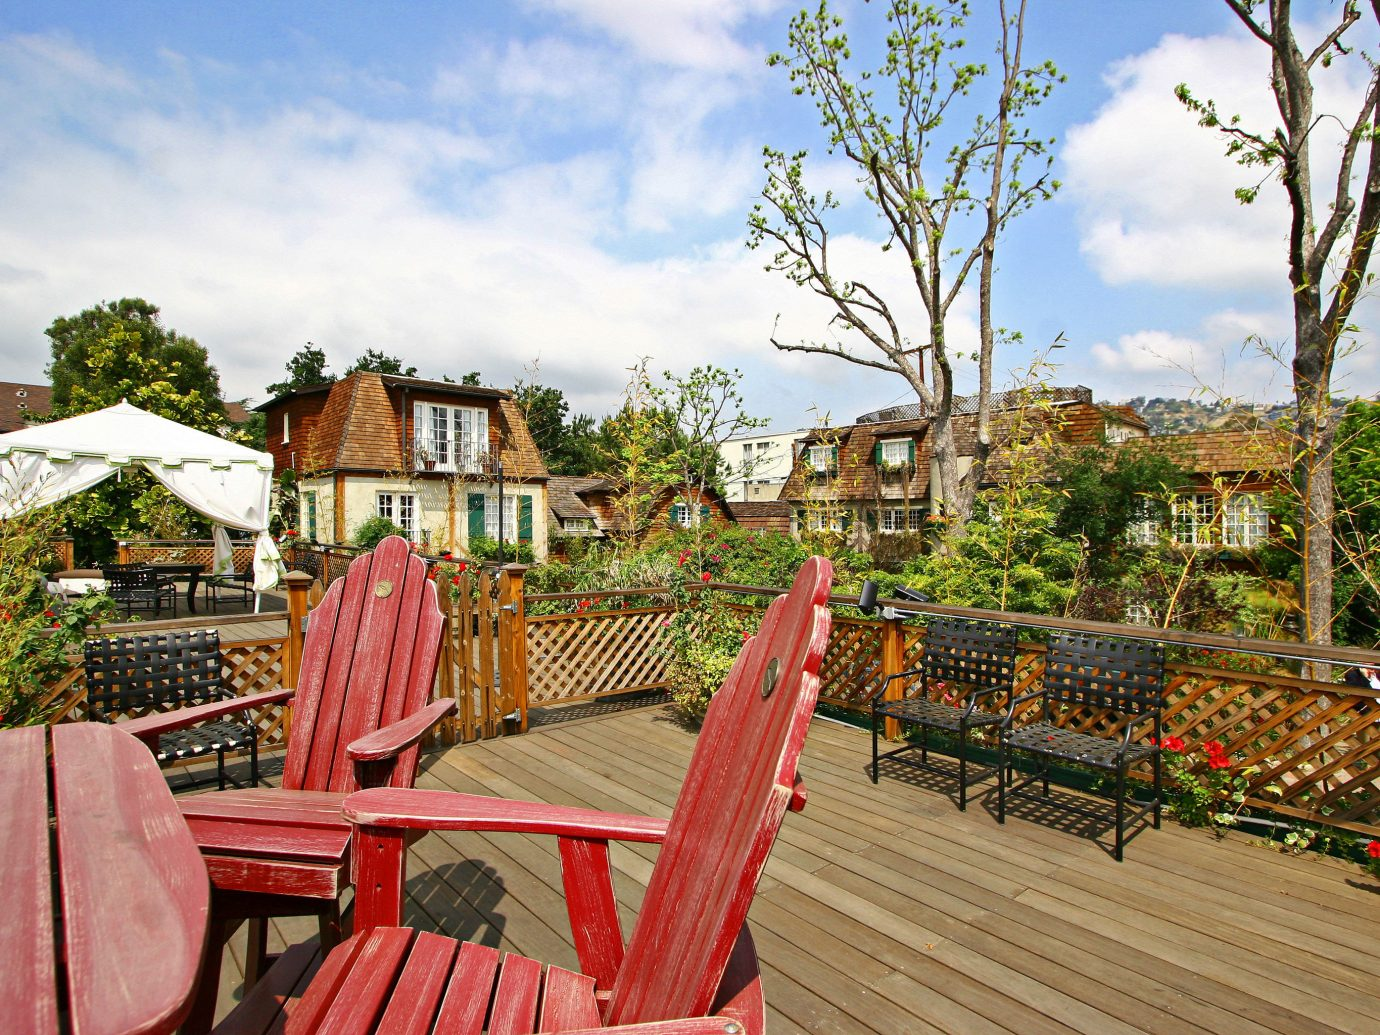 Architecture Buildings Exterior Garden Grounds Hotels sky outdoor tree ground chair human settlement vacation house estate Resort tourism home flower backyard porch set furniture Deck several